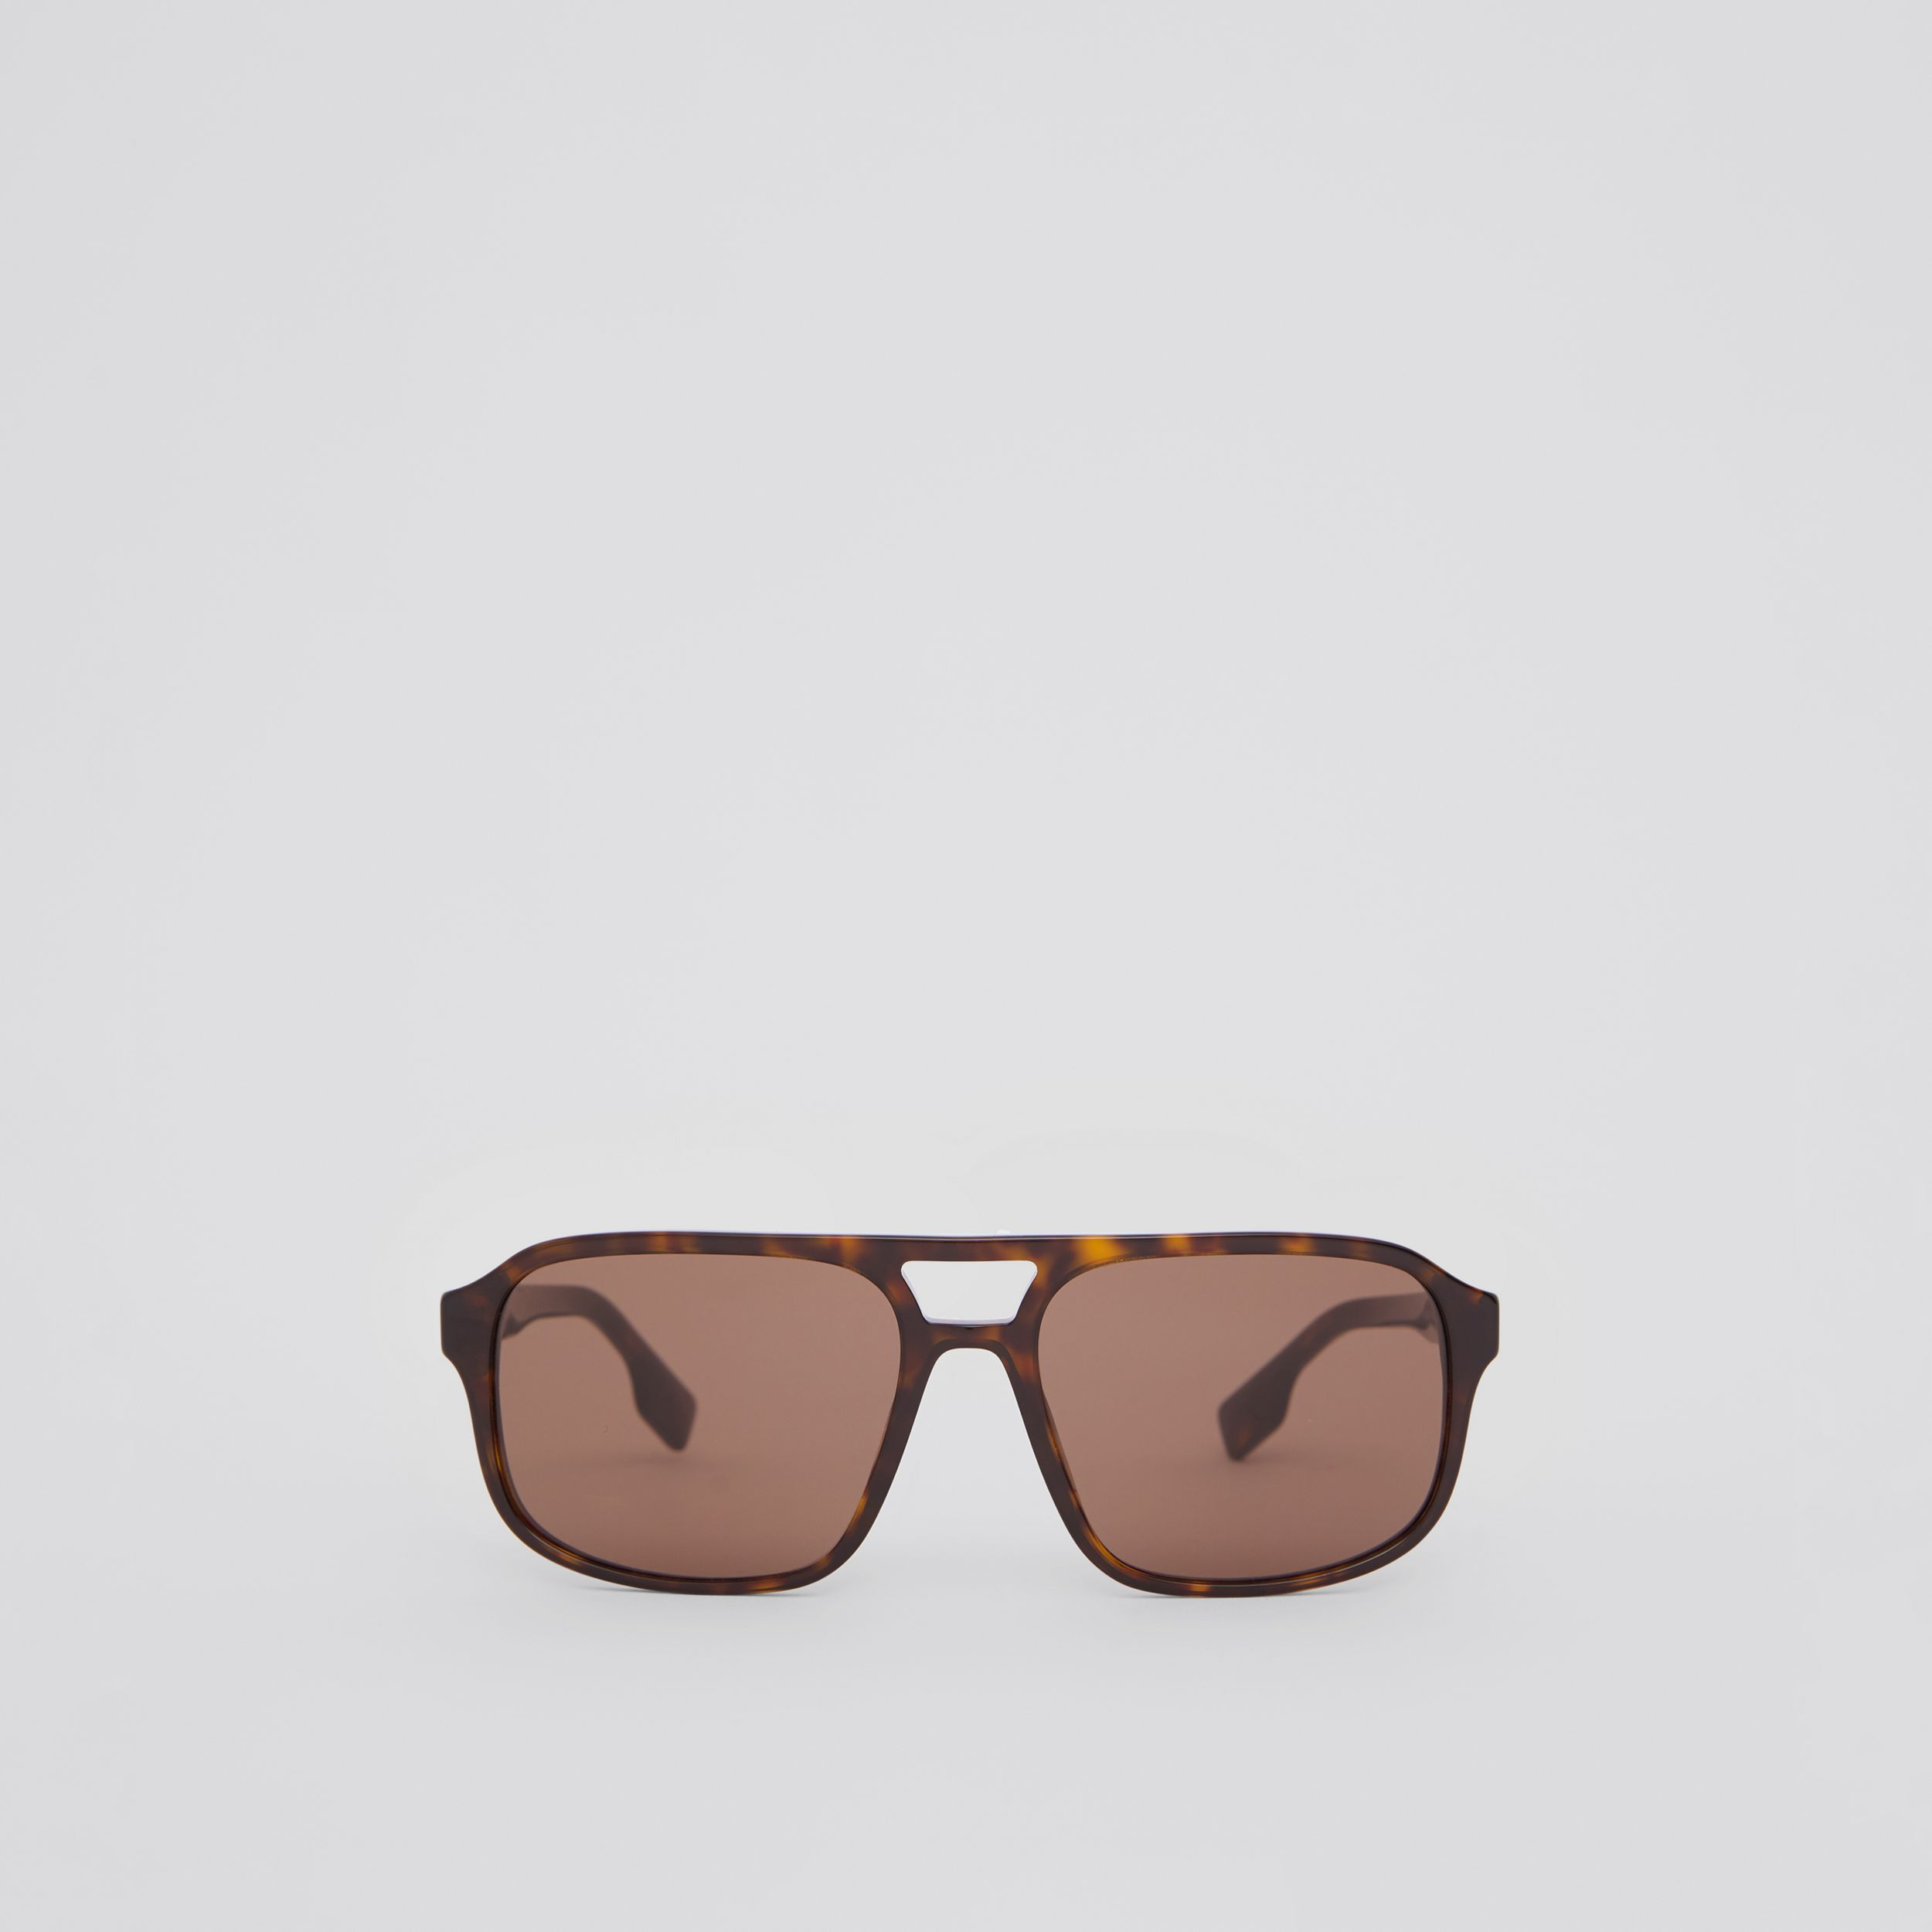 Square Frame Sunglasses in Tortoiseshell - Men | Burberry Hong Kong S.A.R. - 1